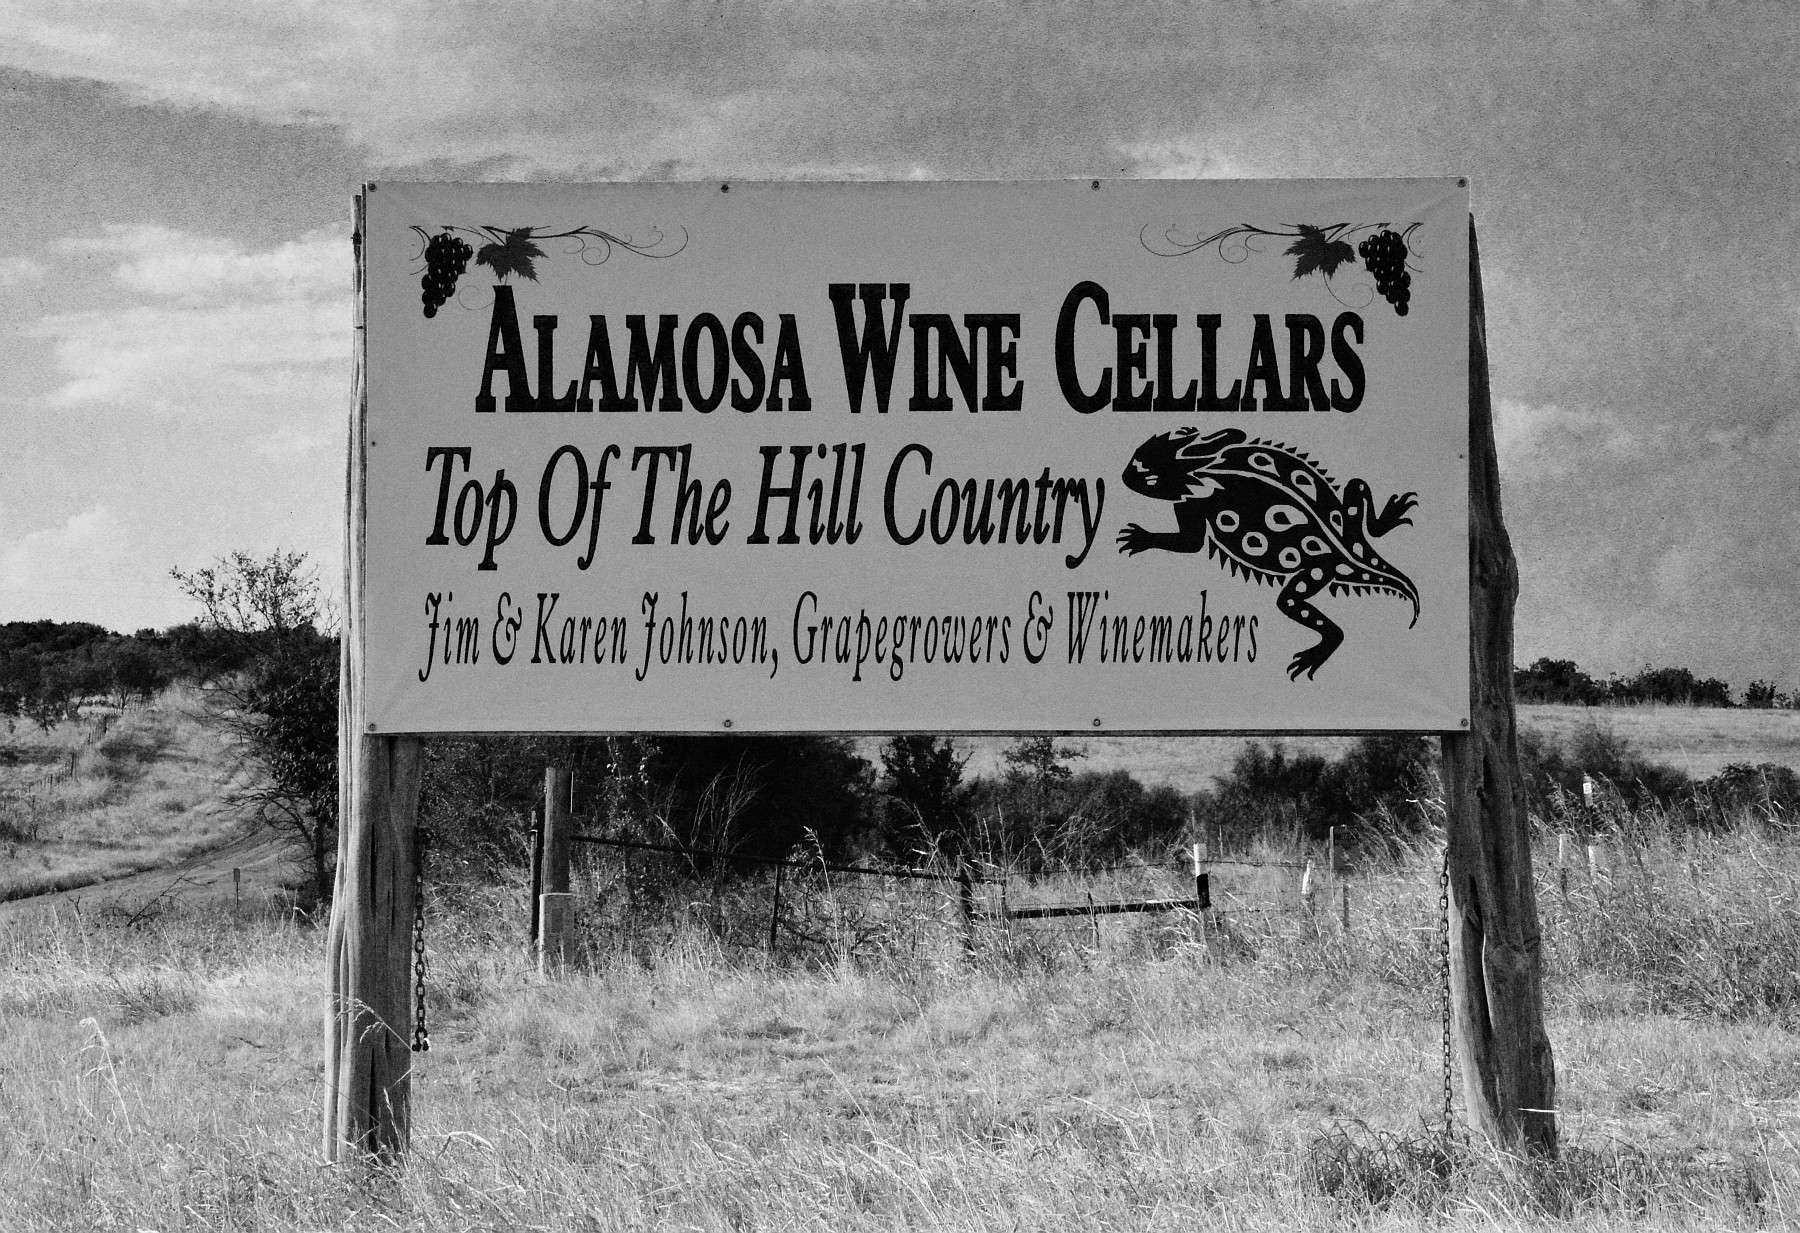 Alamosa Wine Cellars sign